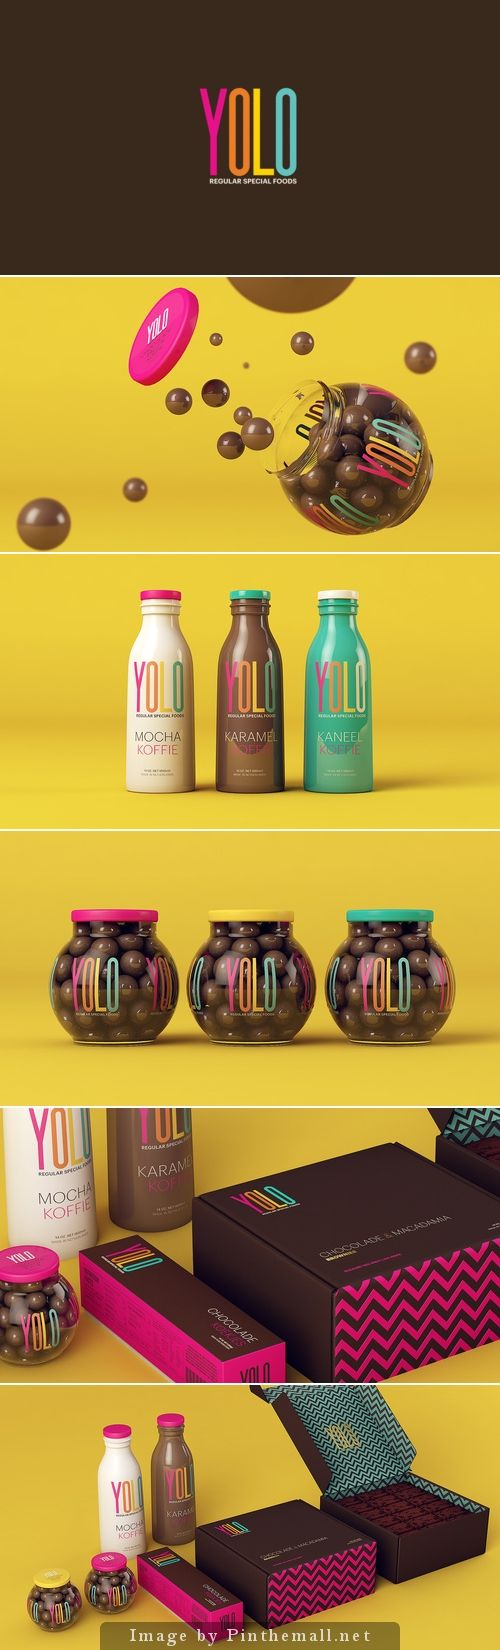 Yolo |Designed by Sweety Branding Studio | Designer: Isabela Rodrigues | Country: Brazil #packaging #branding #marketing PD